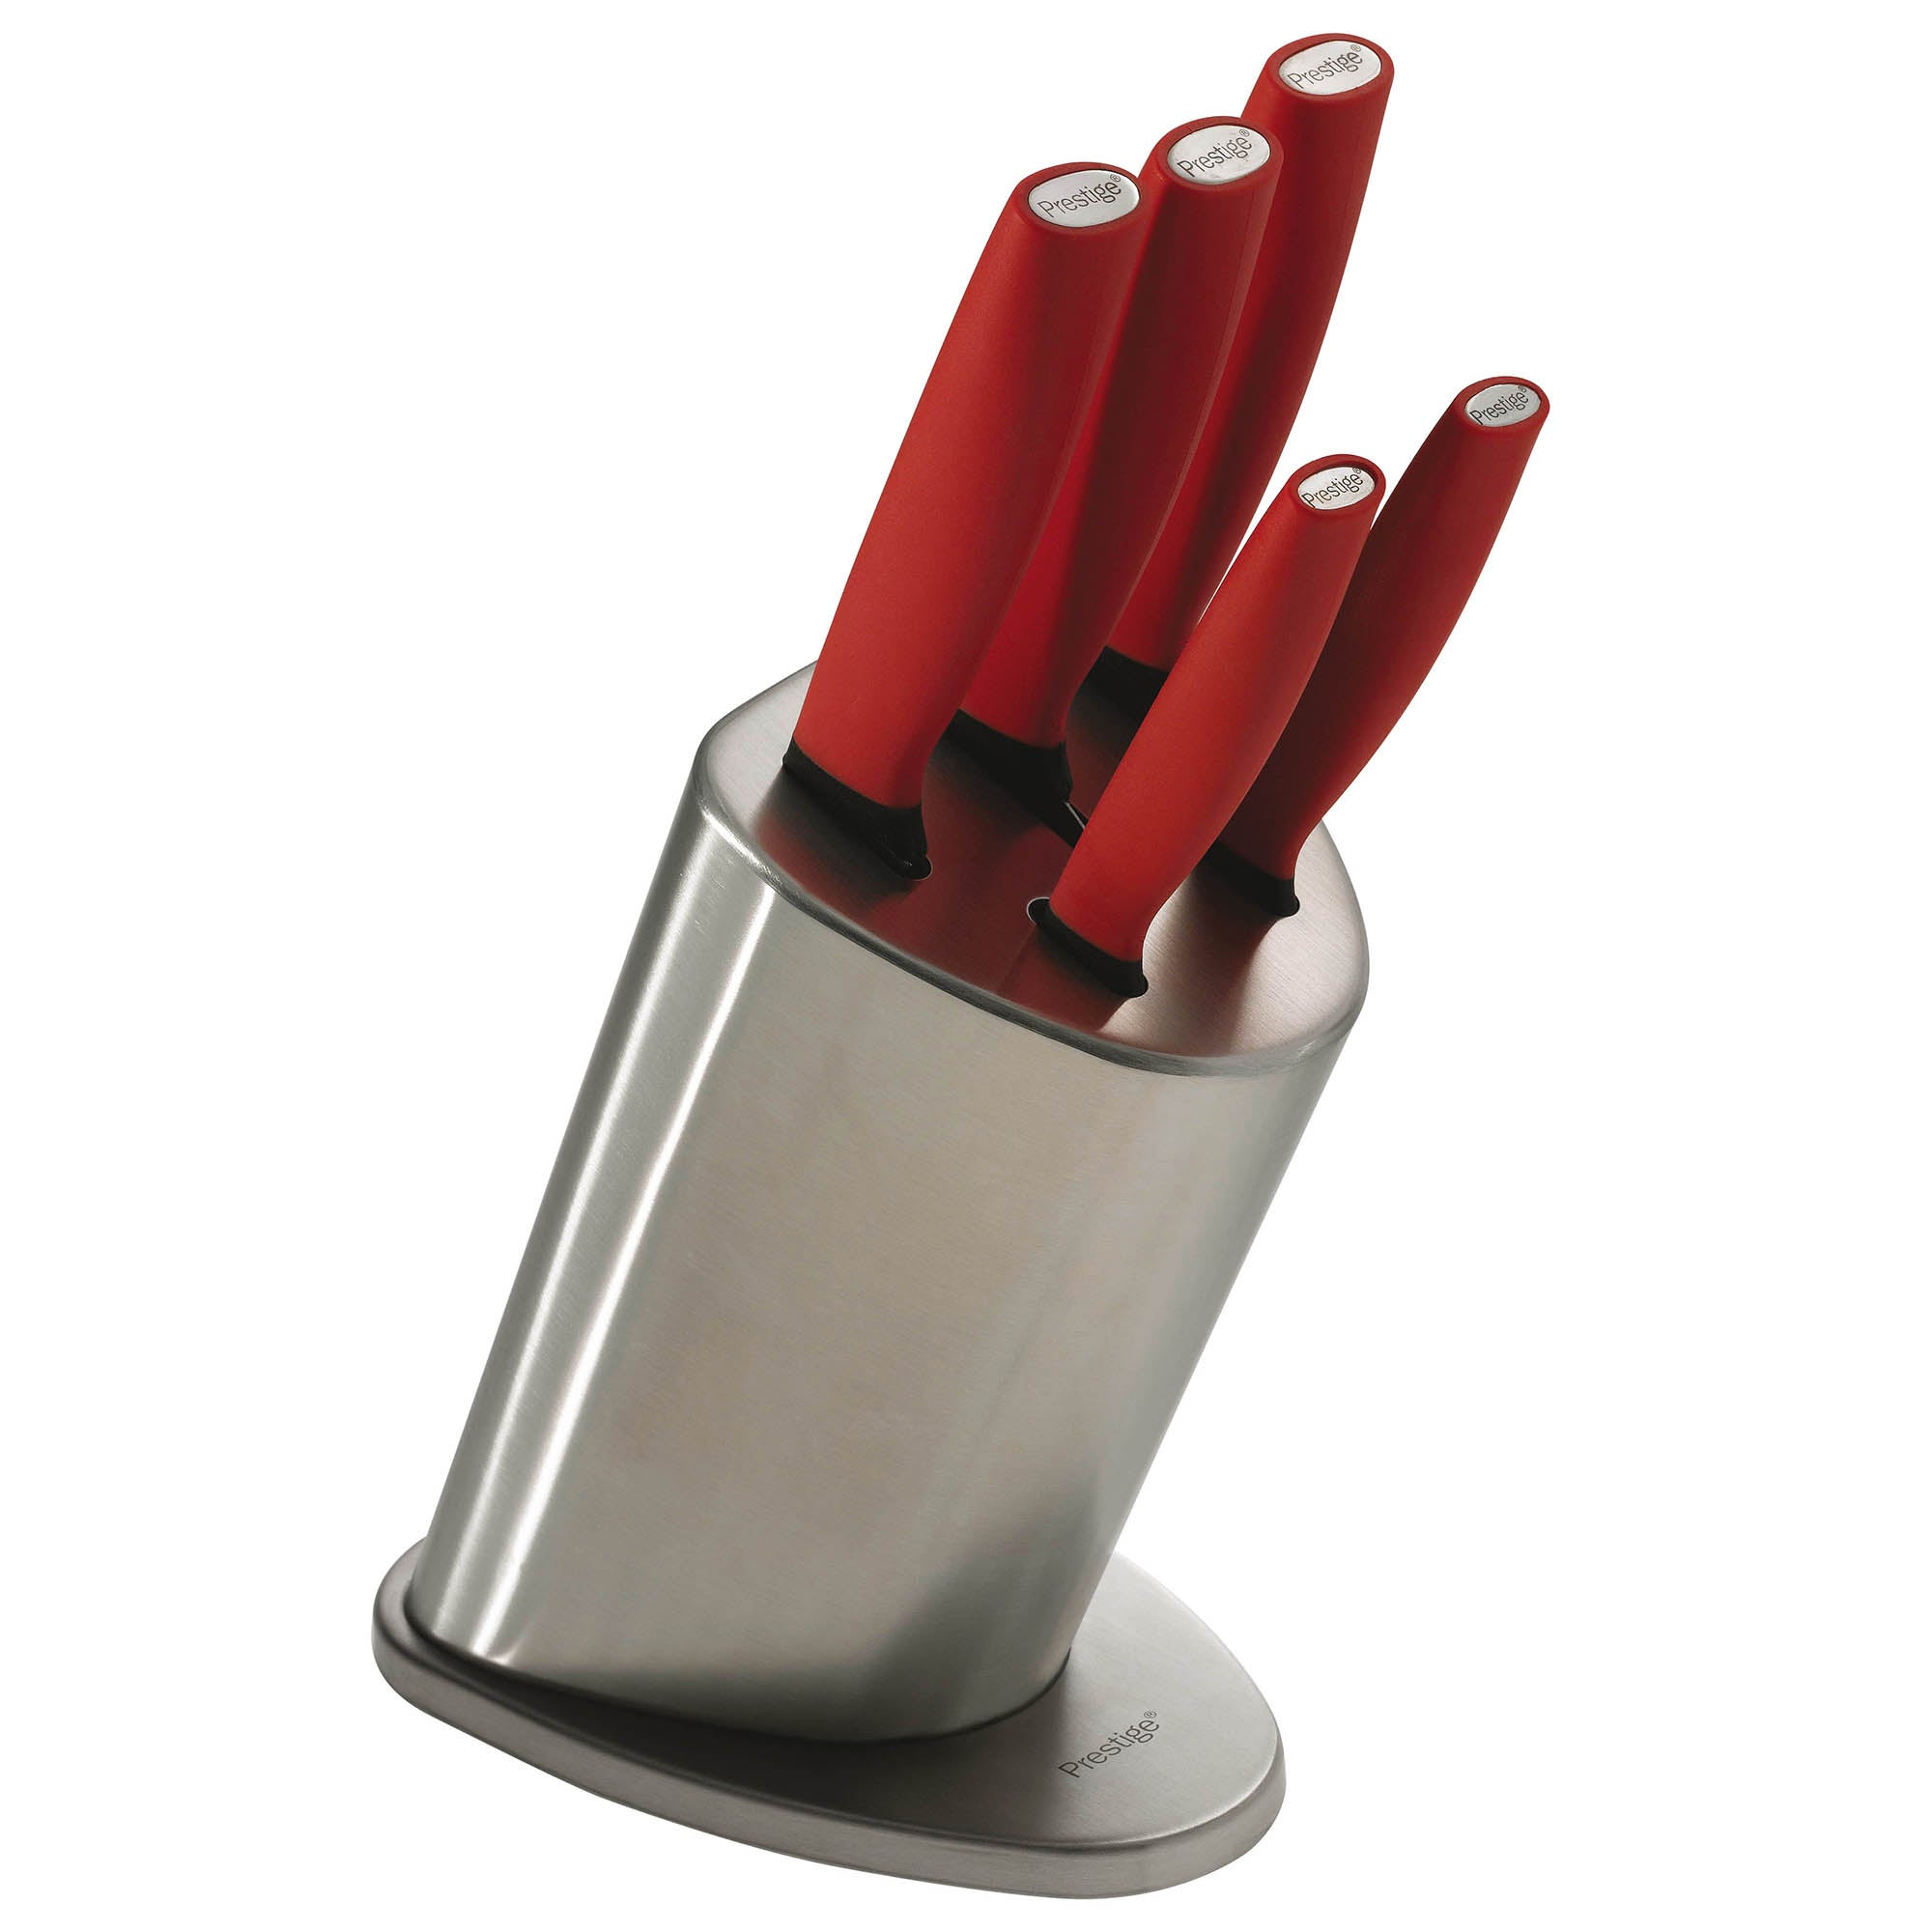 Prestige Create Red Nylon Utensil Collection